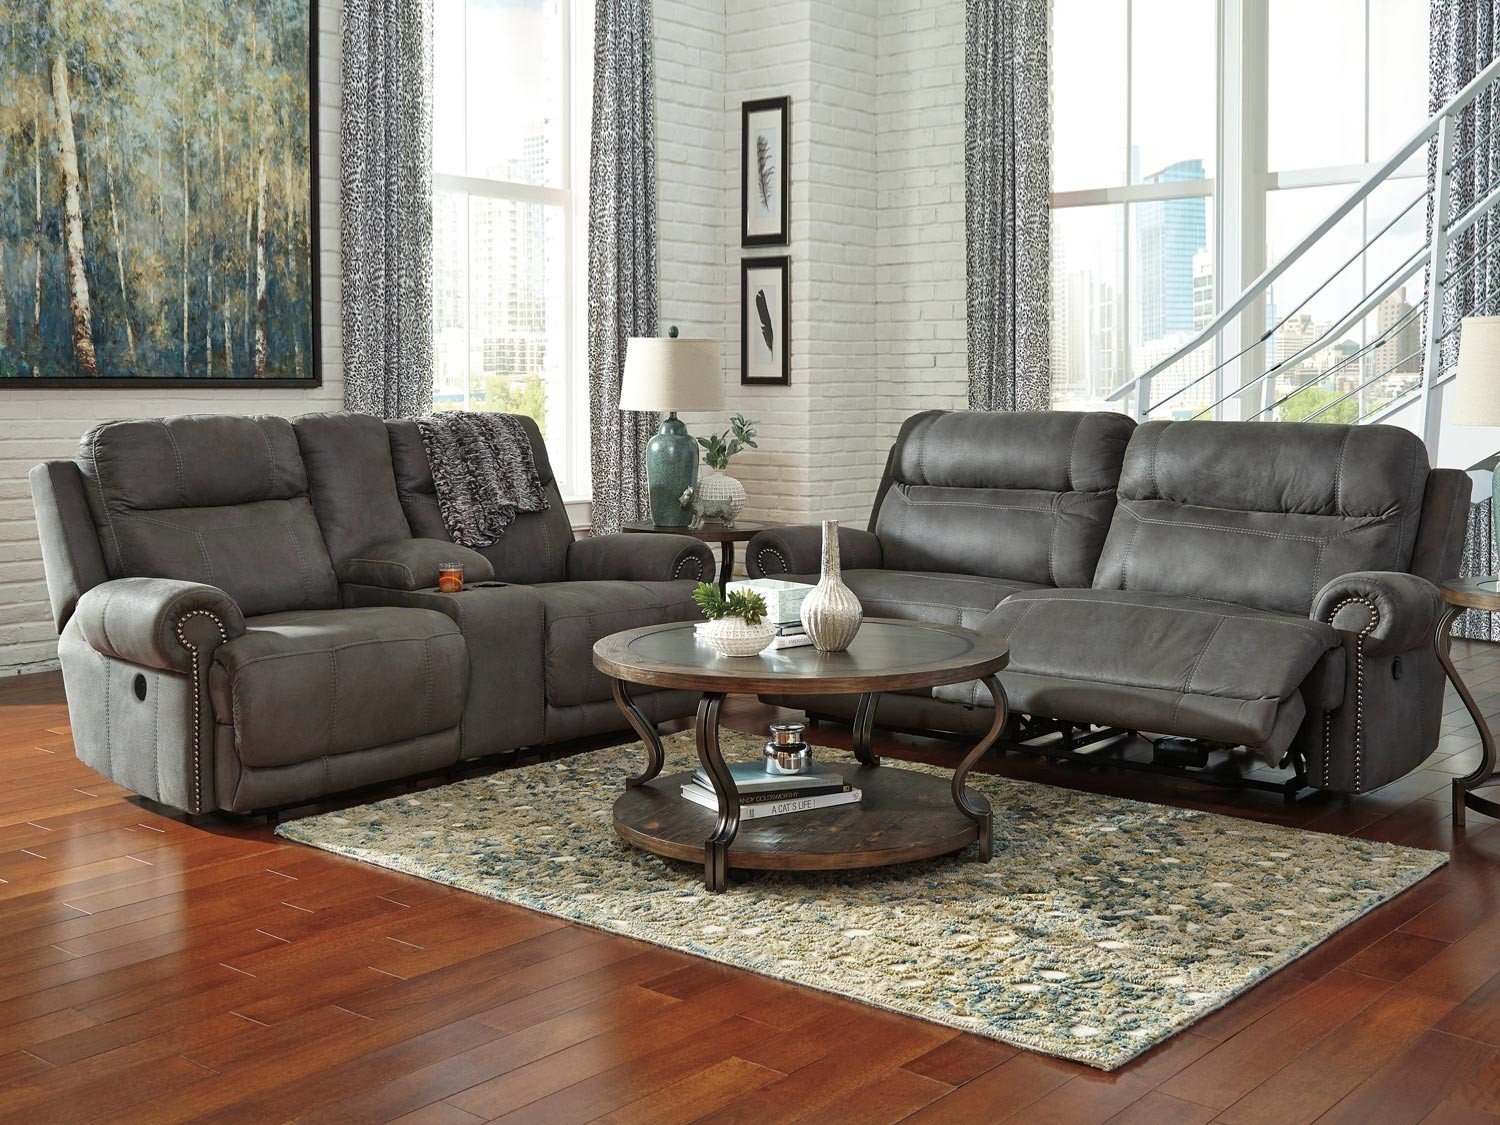 Bedroom Set ashley Furniture Awesome Austere Reclining 2 Piece Living Room Set Gray